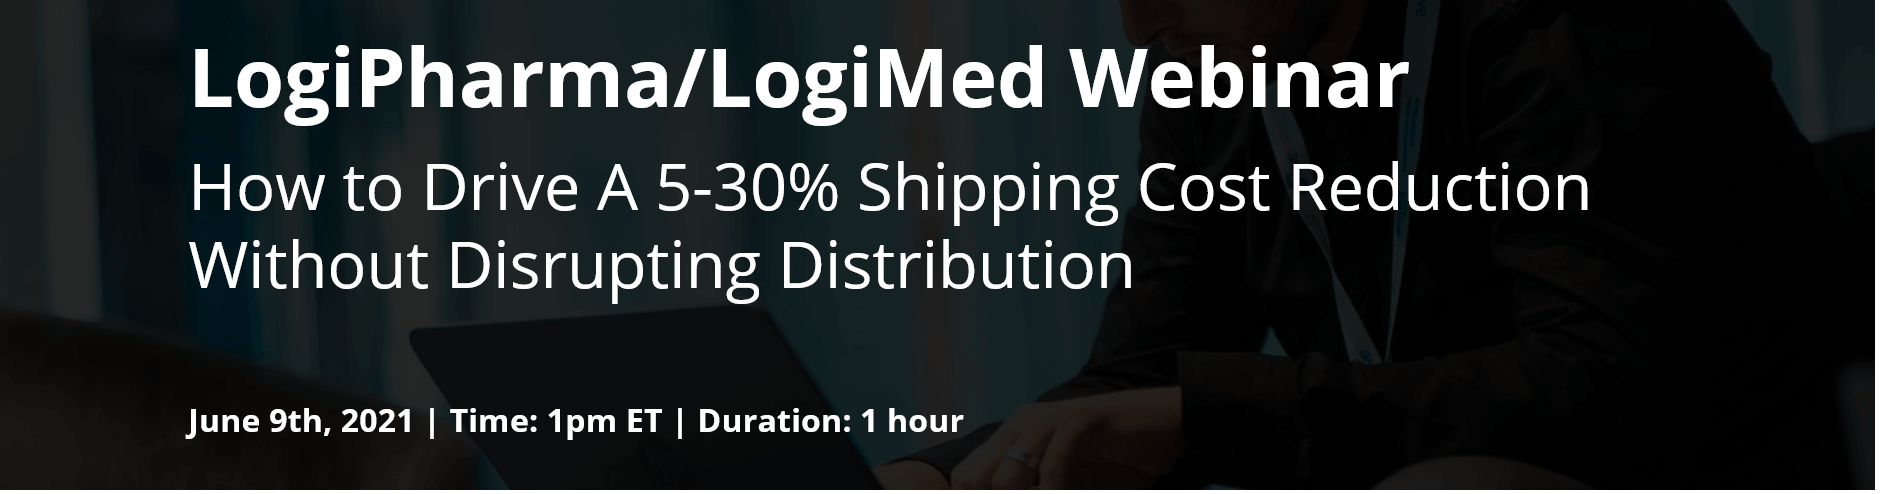 How to Drive A 5-30% Shipping Cost Reduction Without Disrupting Distribution -TechProspect How to Drive A 5-30% Shipping Cost Reduction Without Disrupting Distribution -TechProspect